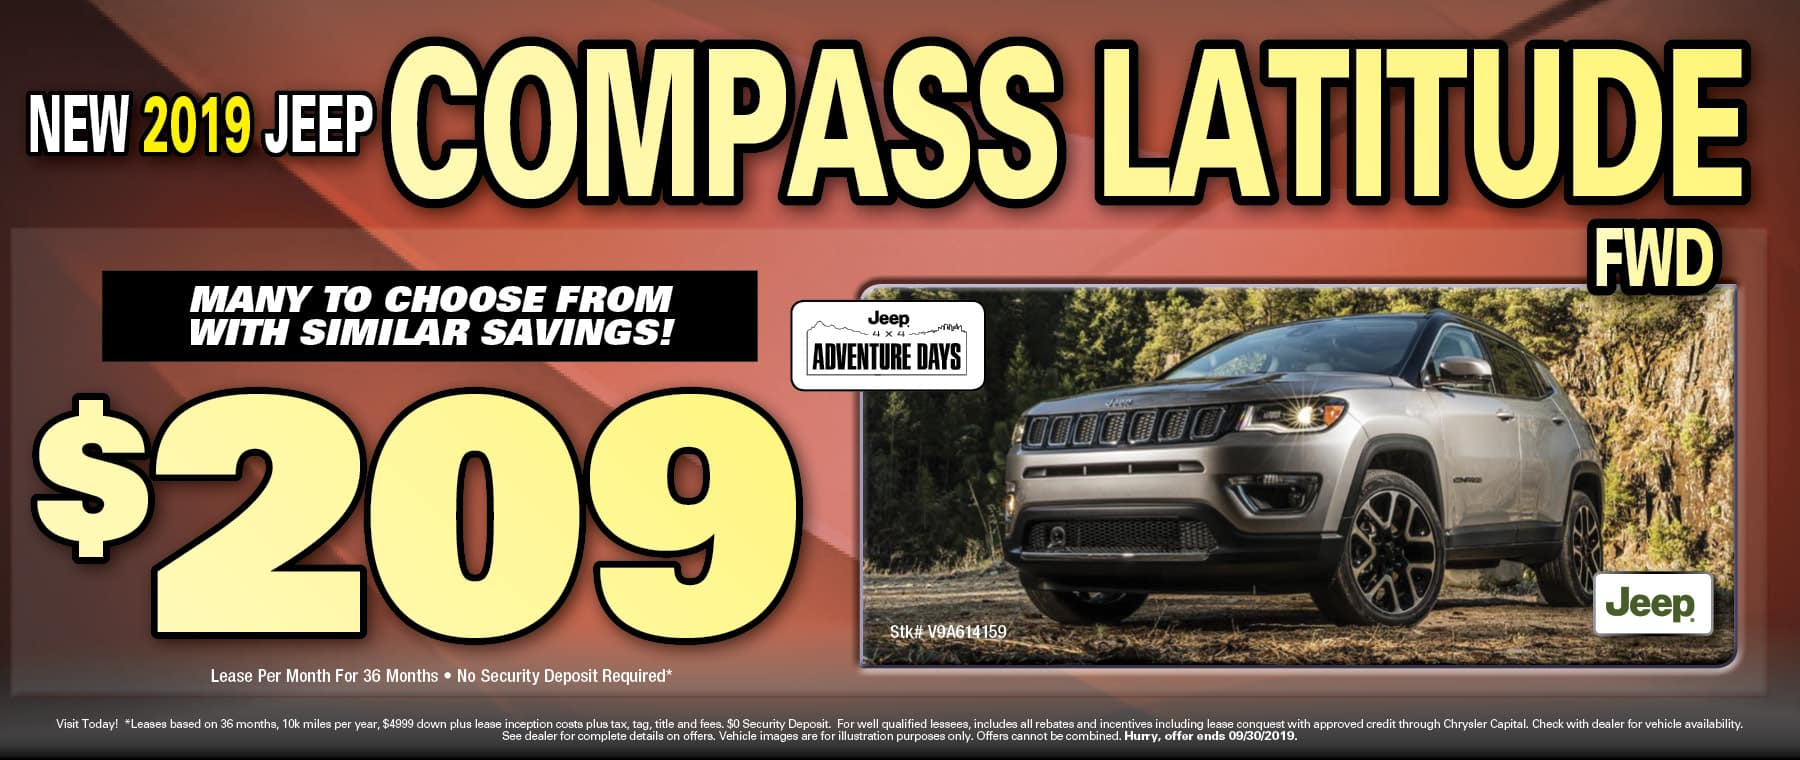 Compass $209 Lease